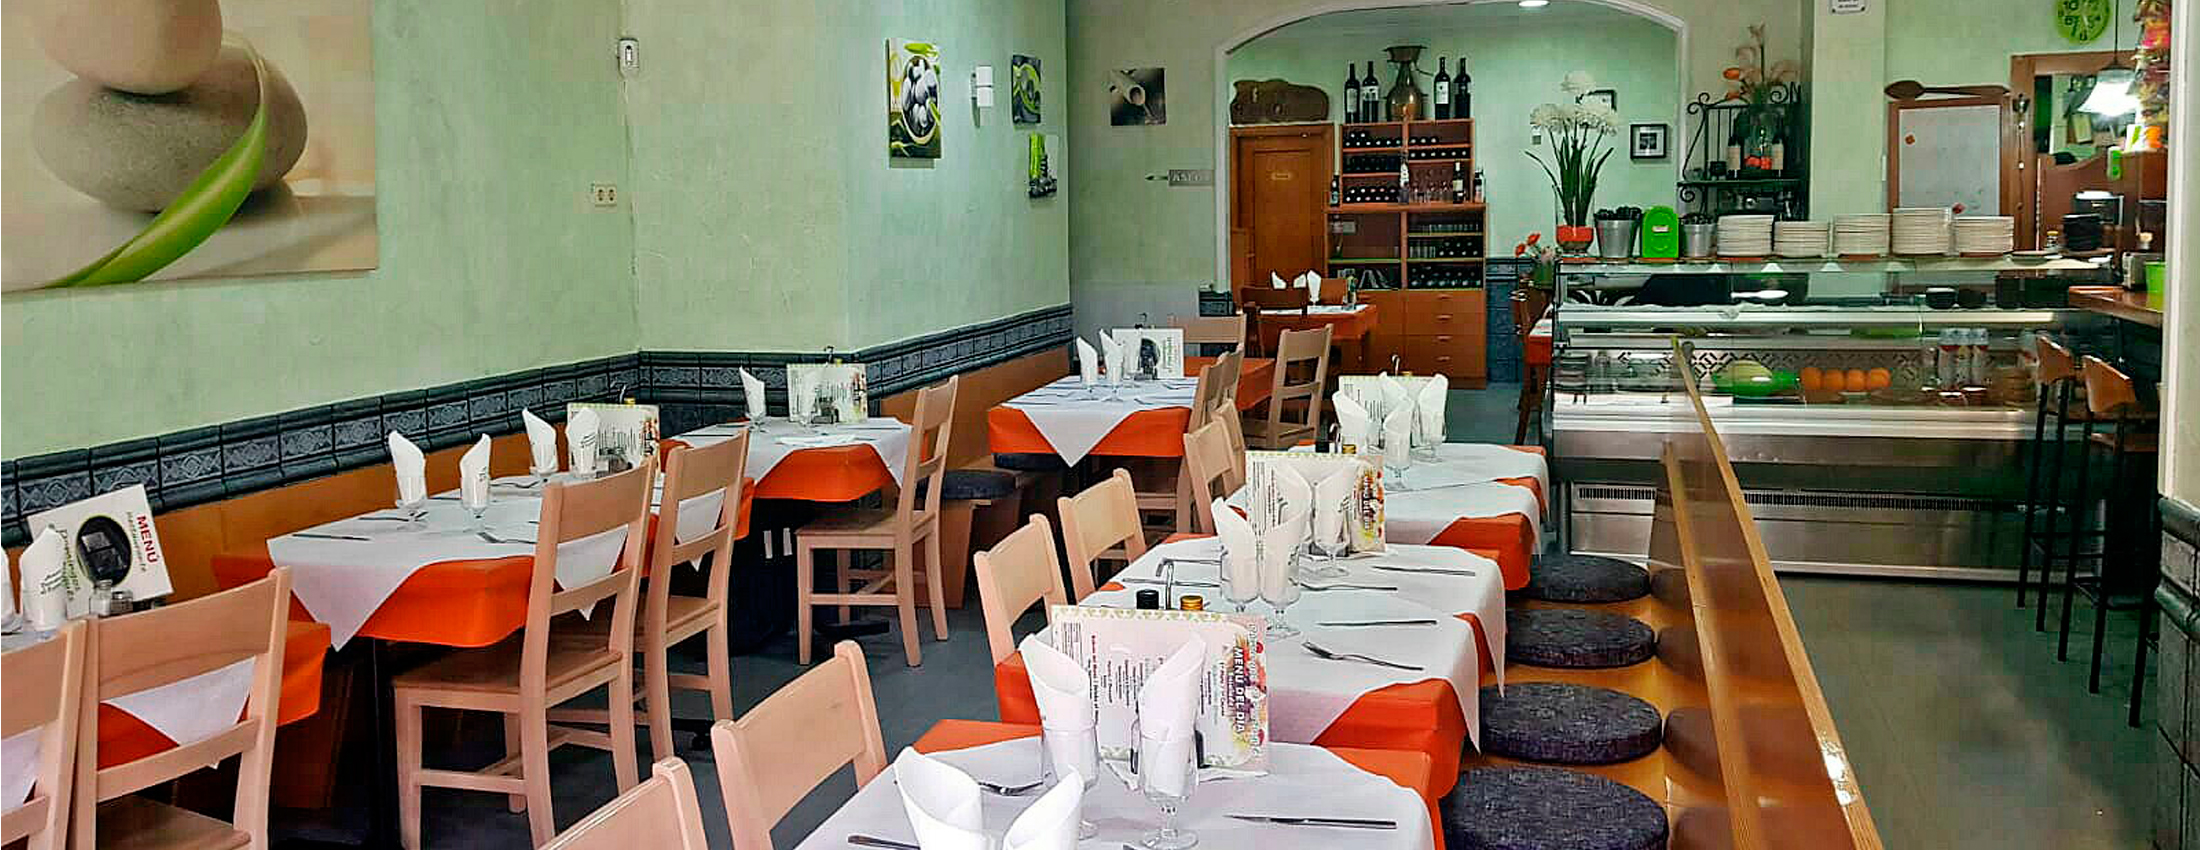 salon-interior-restaurante-el-português